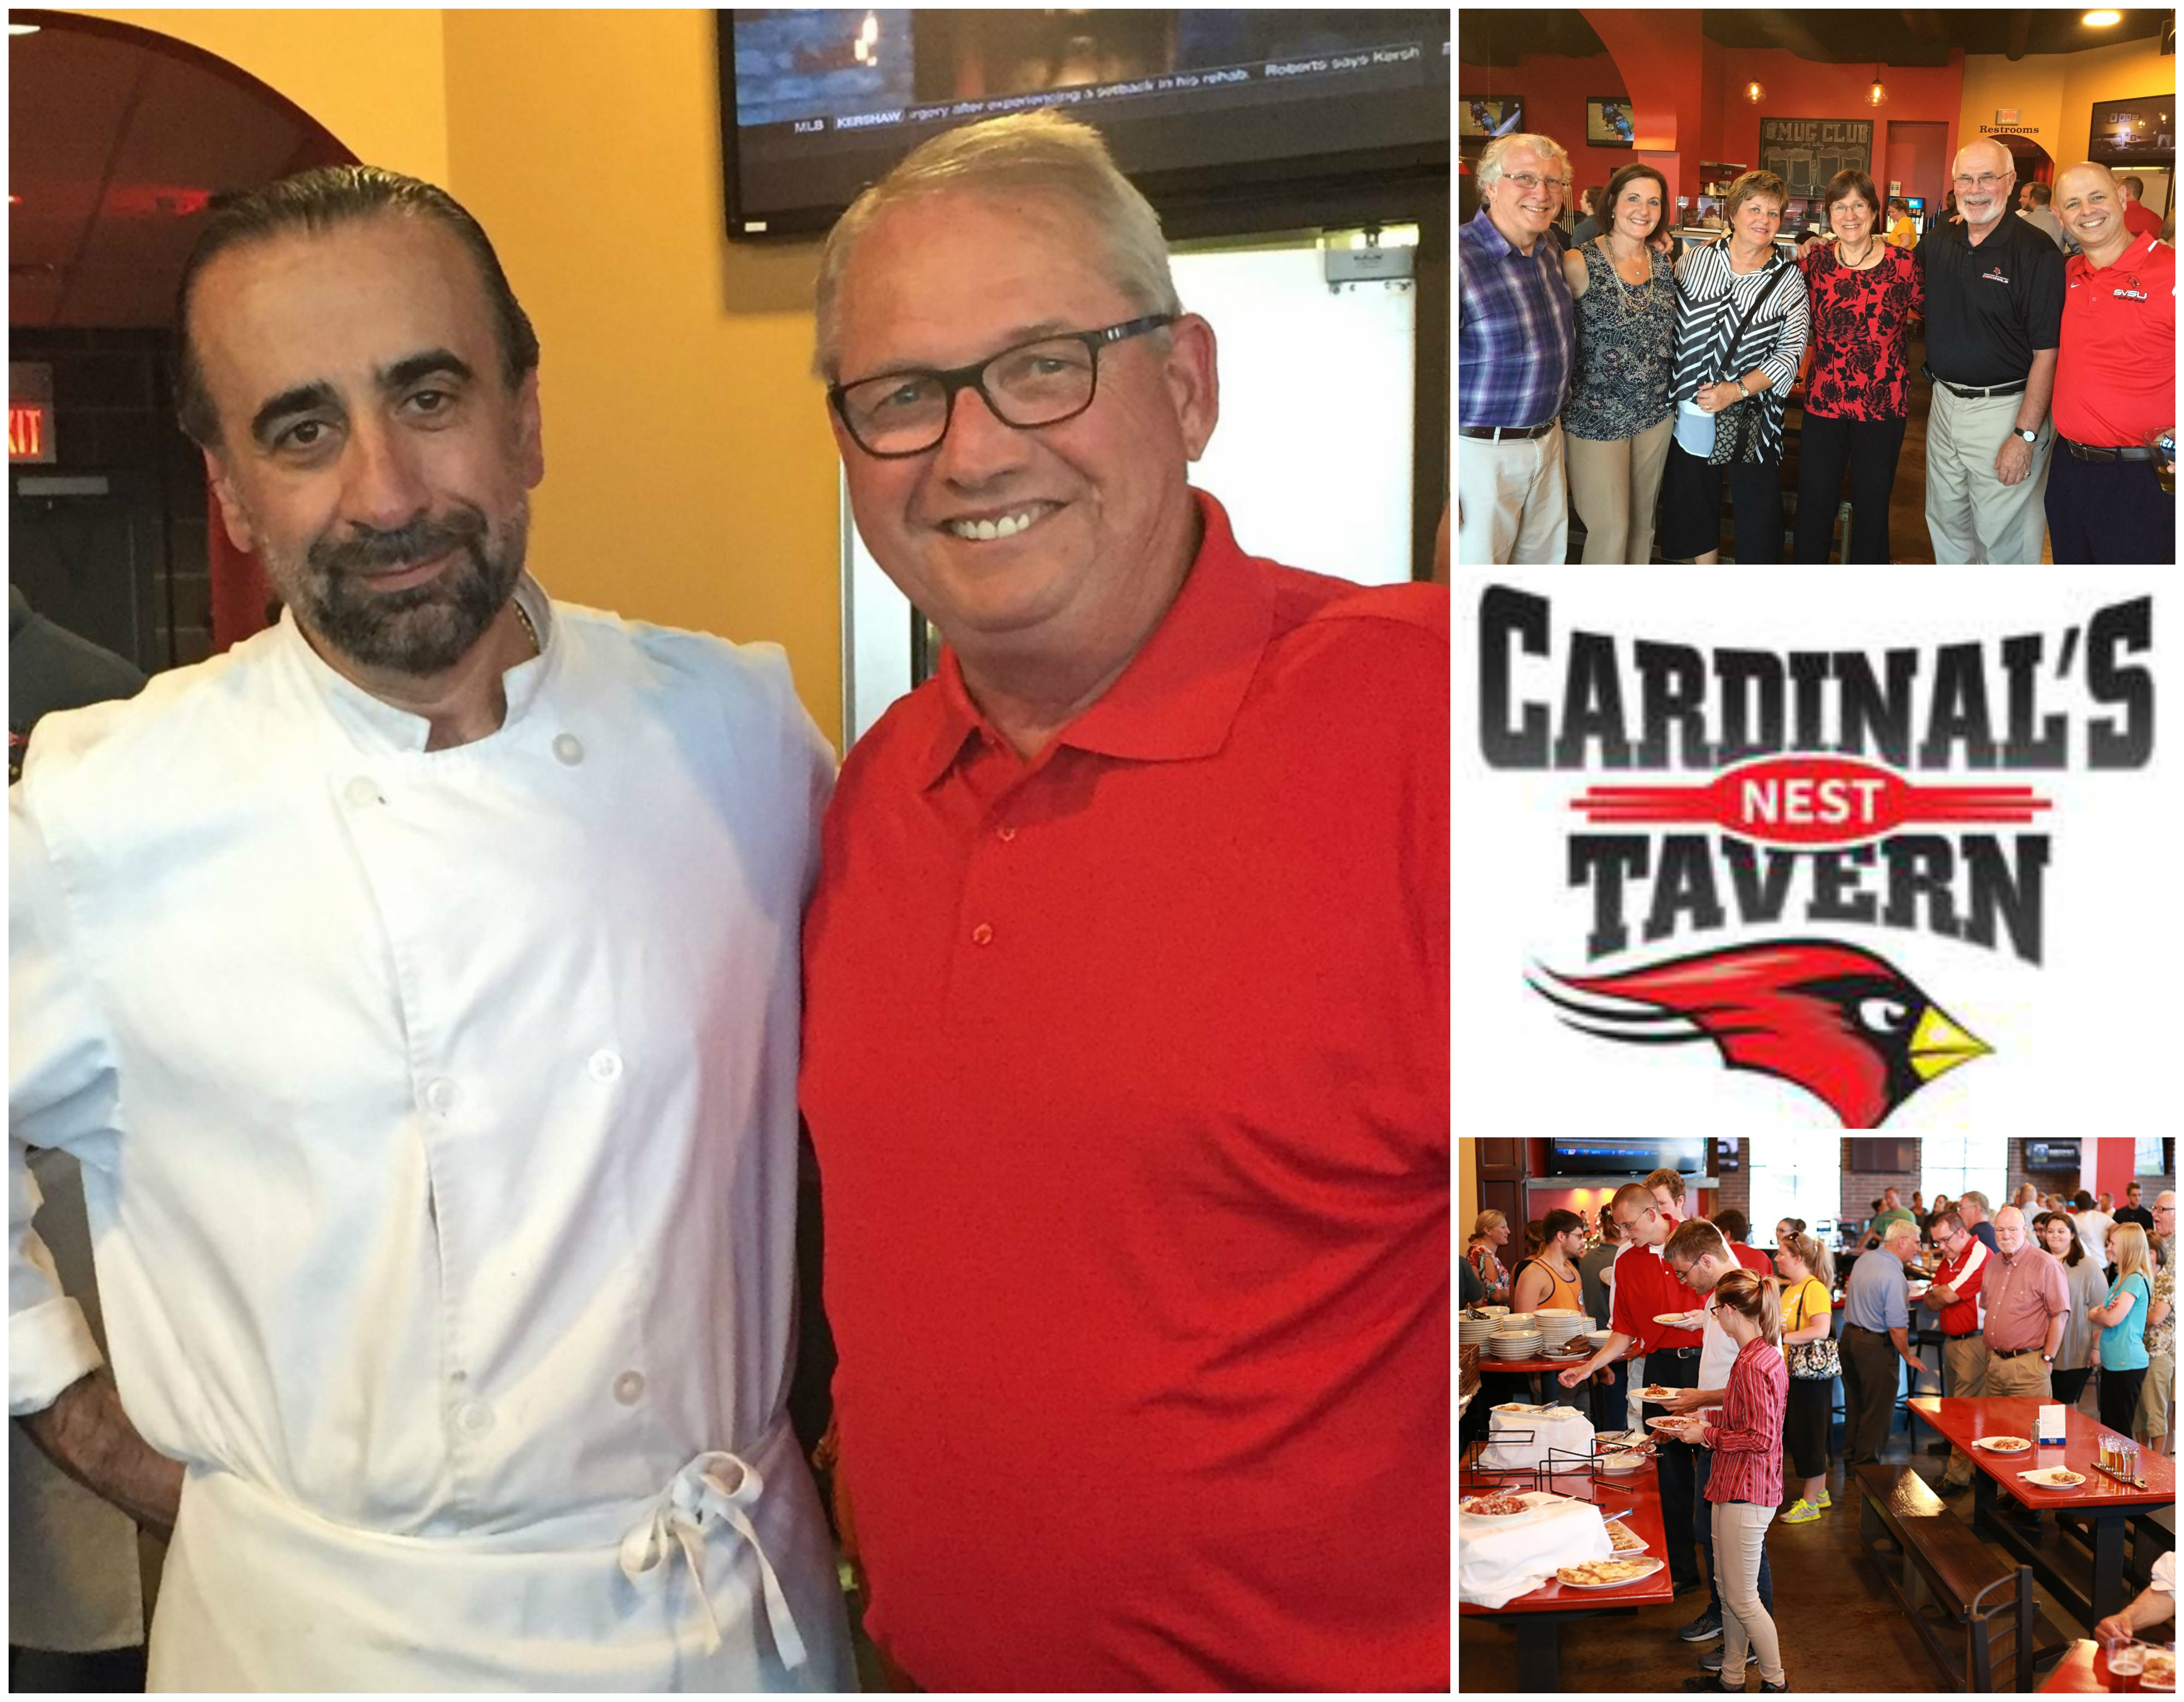 Cardinals Nest Tavern opening party collage